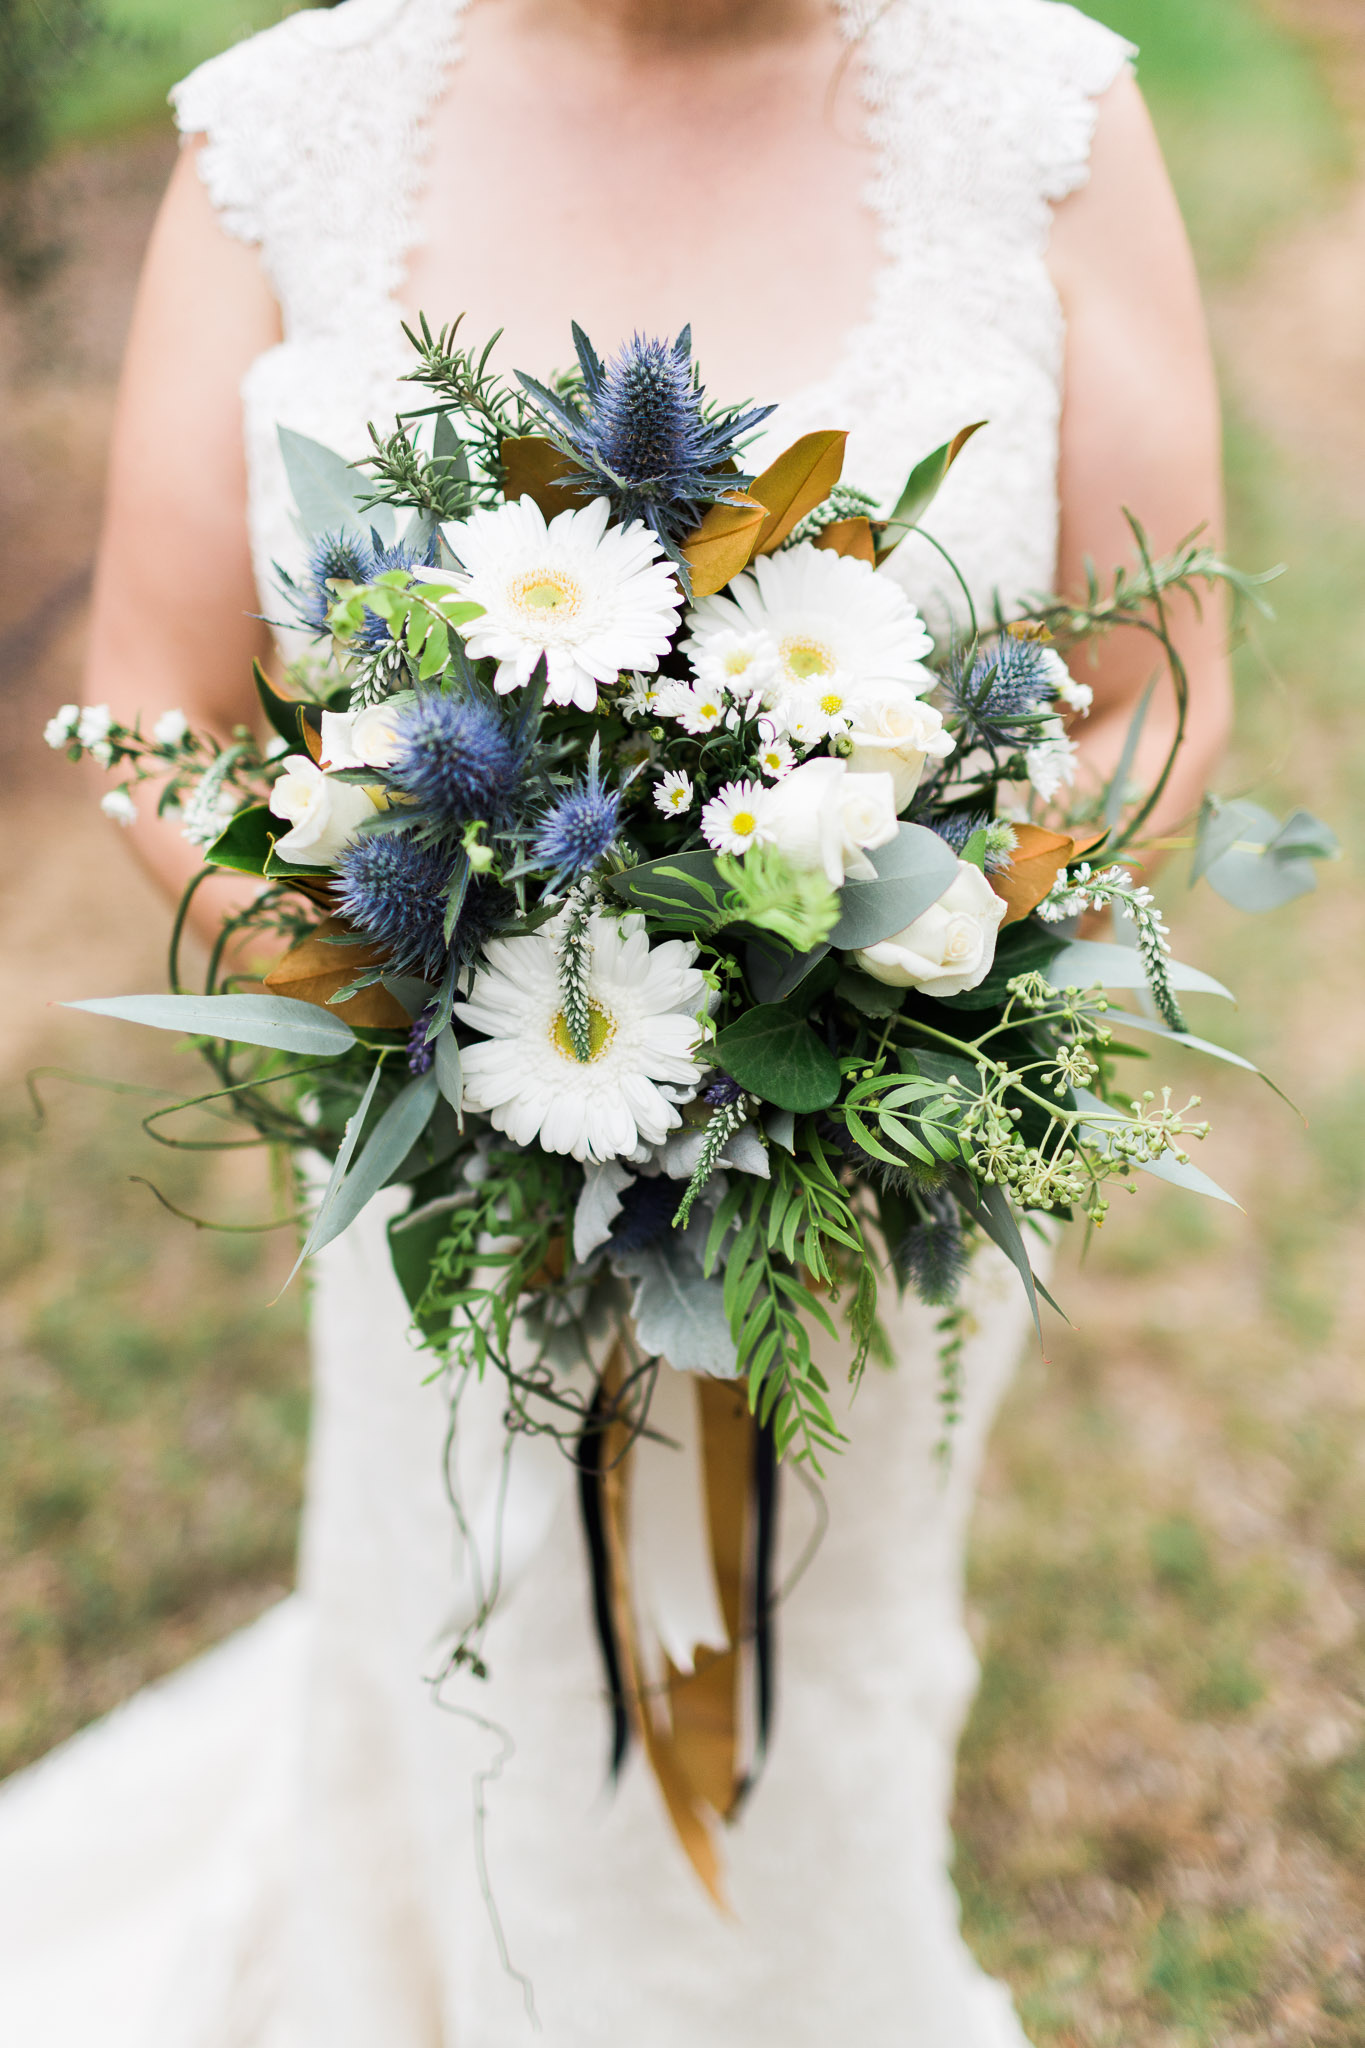 A bride holding an unstructured style of wedding bouquet in Canberra.